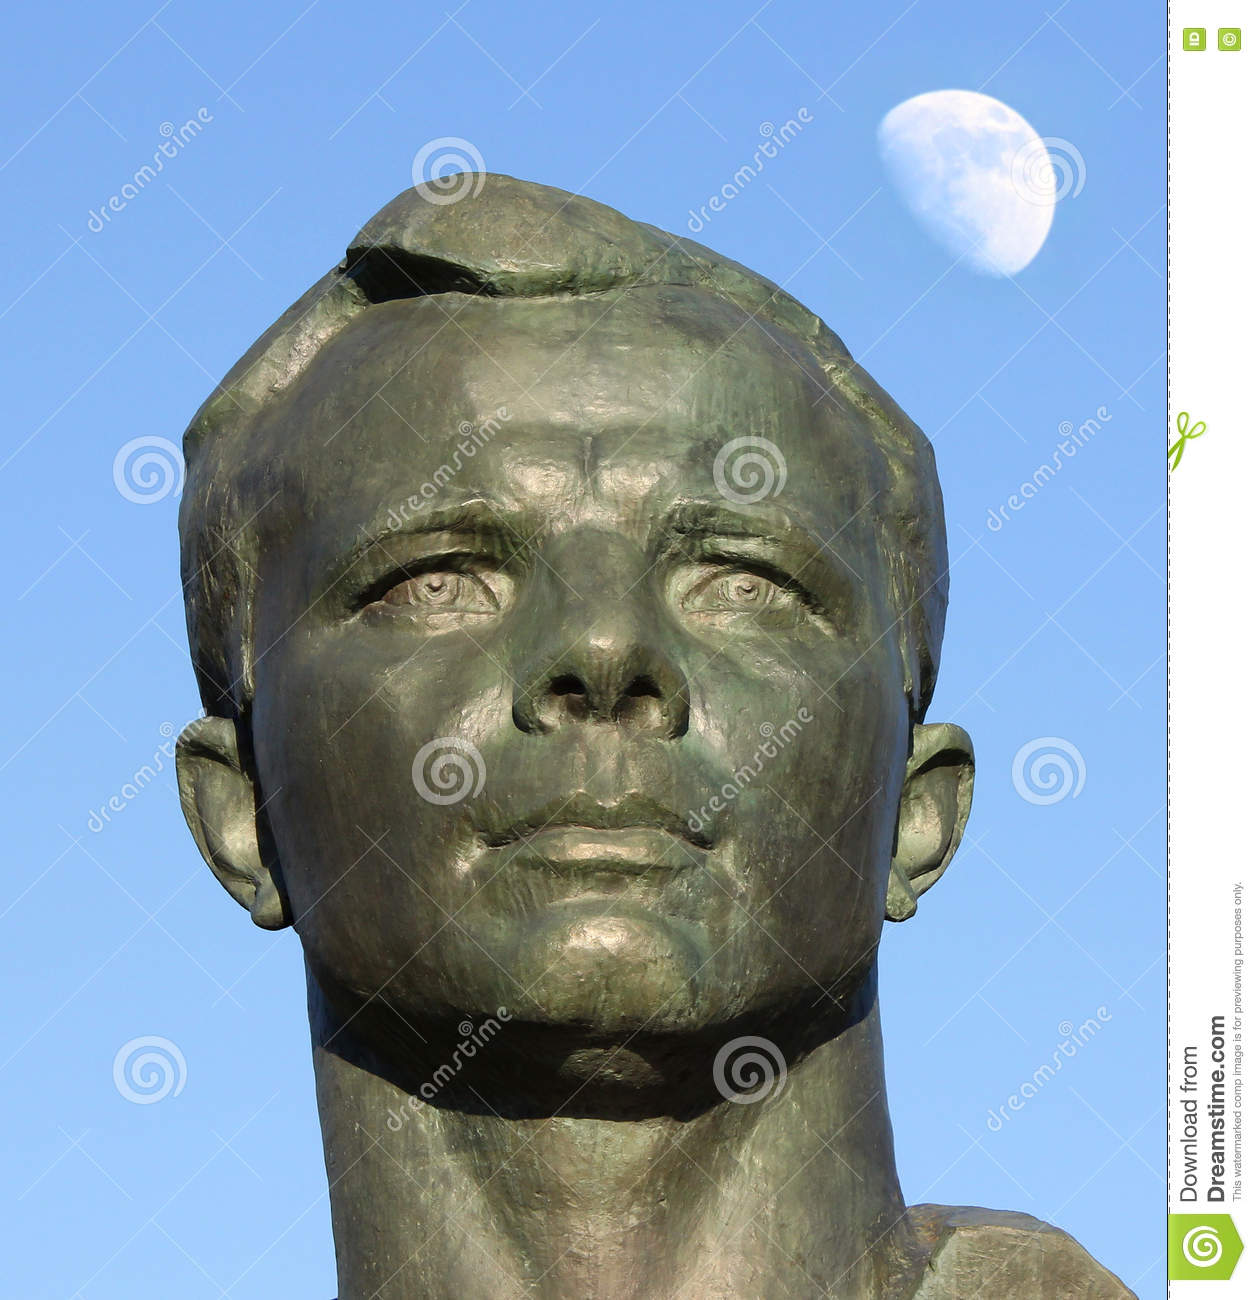 Monument to Yuri Gagarin in the Alley of Cosmonauts, Moscow, Russia